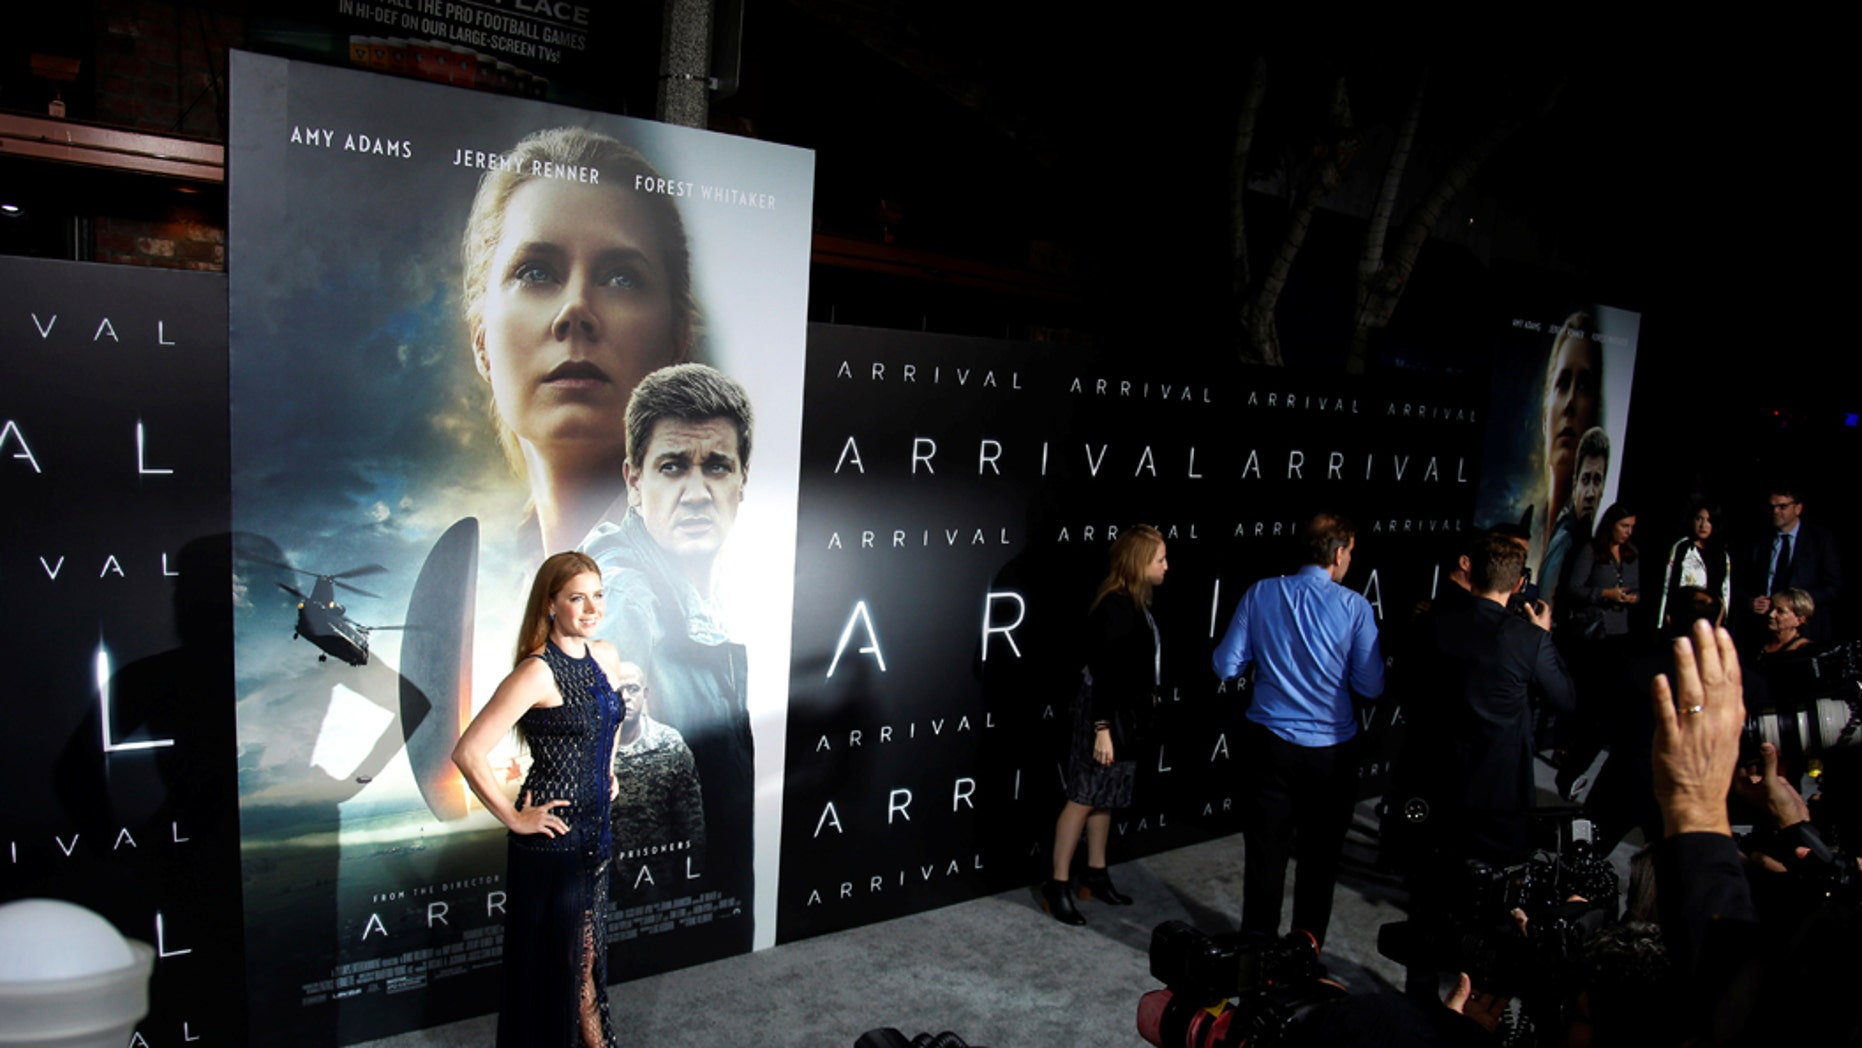 """File photo: Actor Amy Adams poses at a premiere of the film """"Arrival"""" in Los Angeles, California, November 6, 2016. (REUTERS/Danny Moloshok)"""